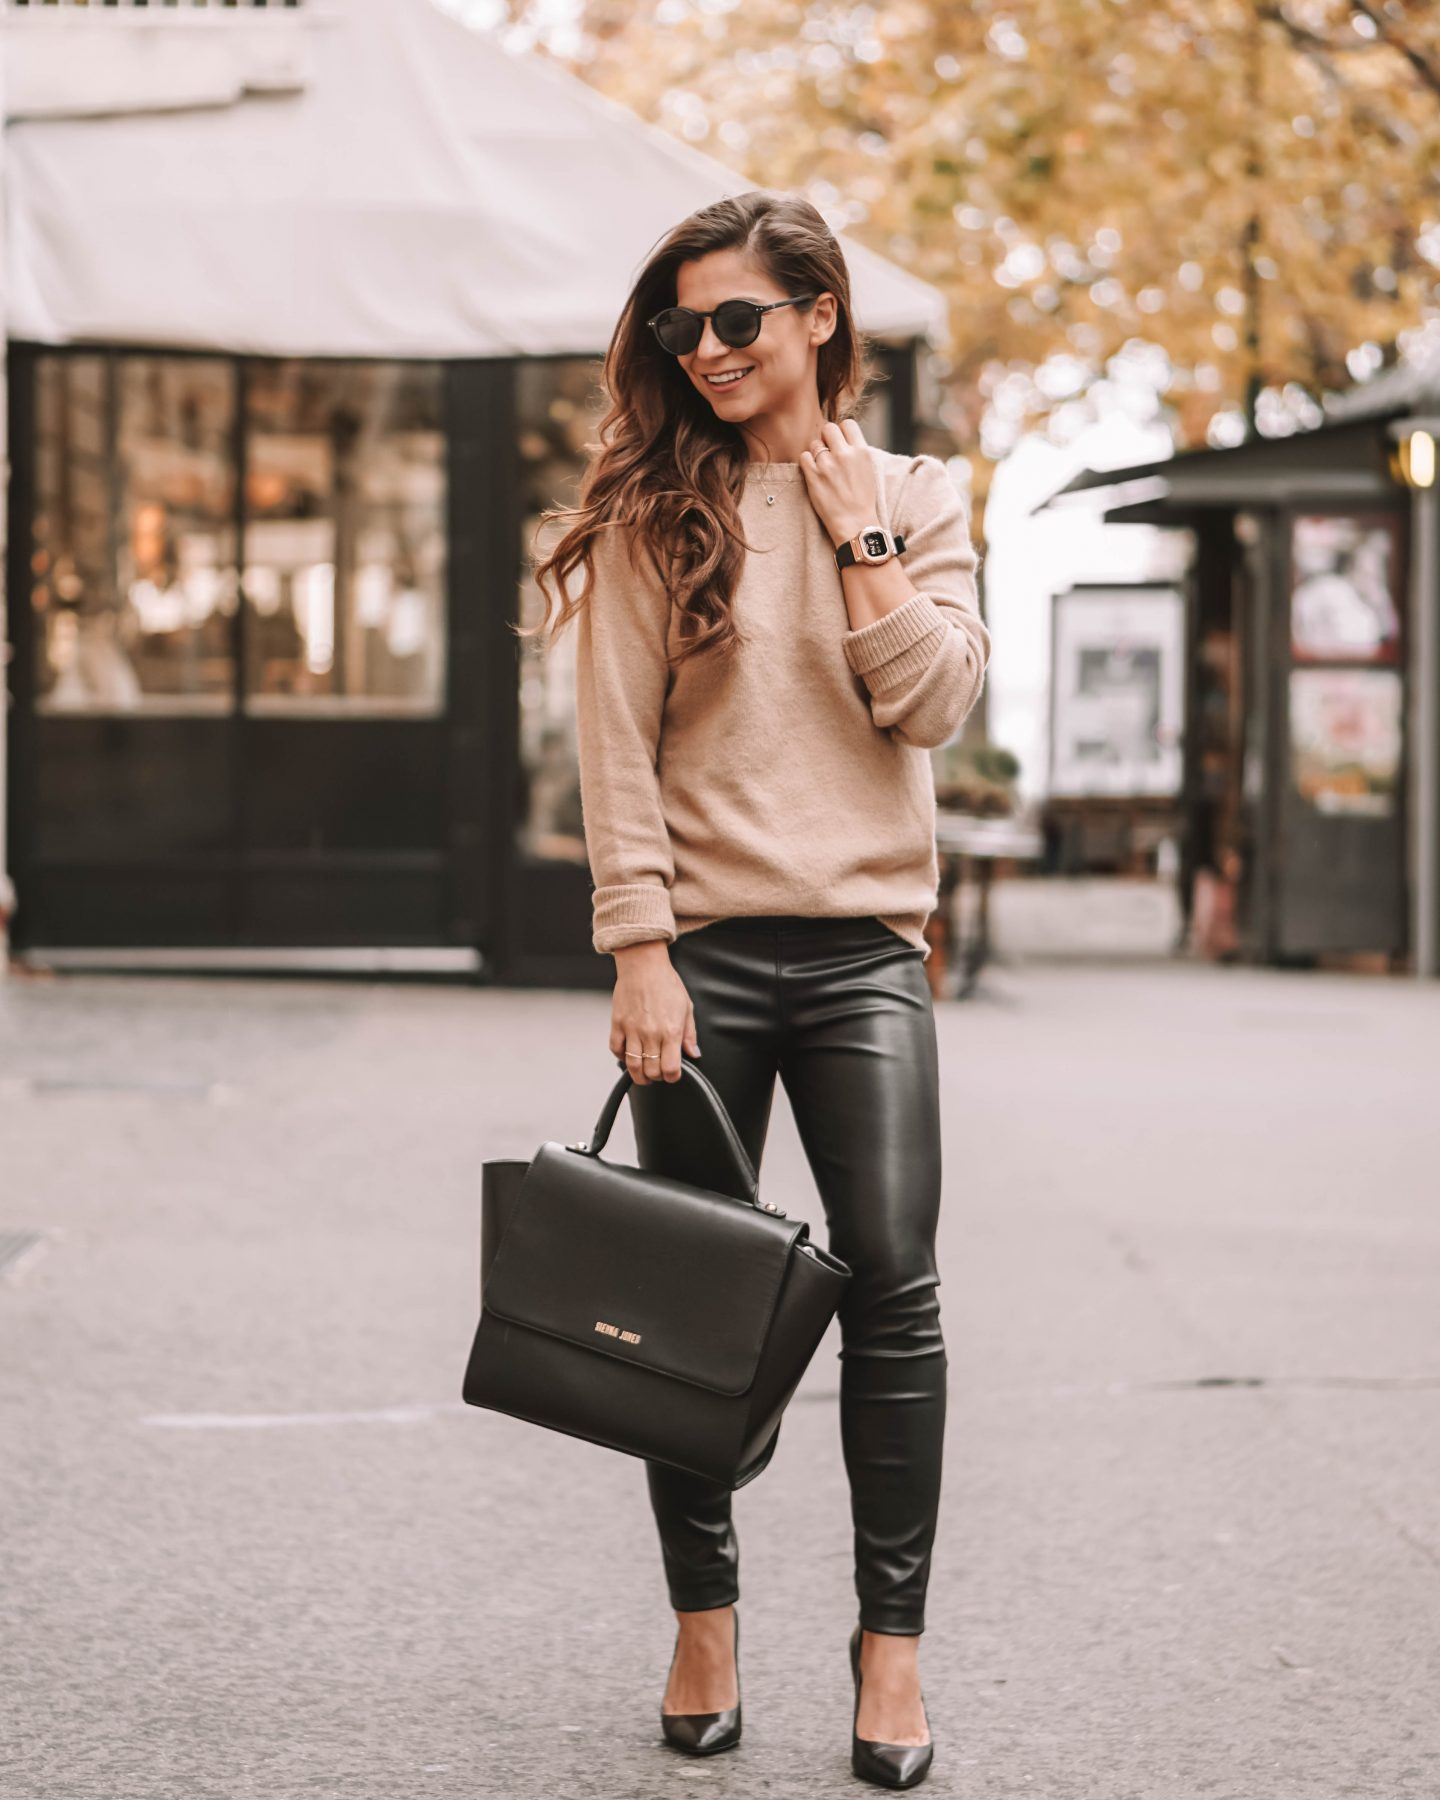 Beige sweater and leather pants